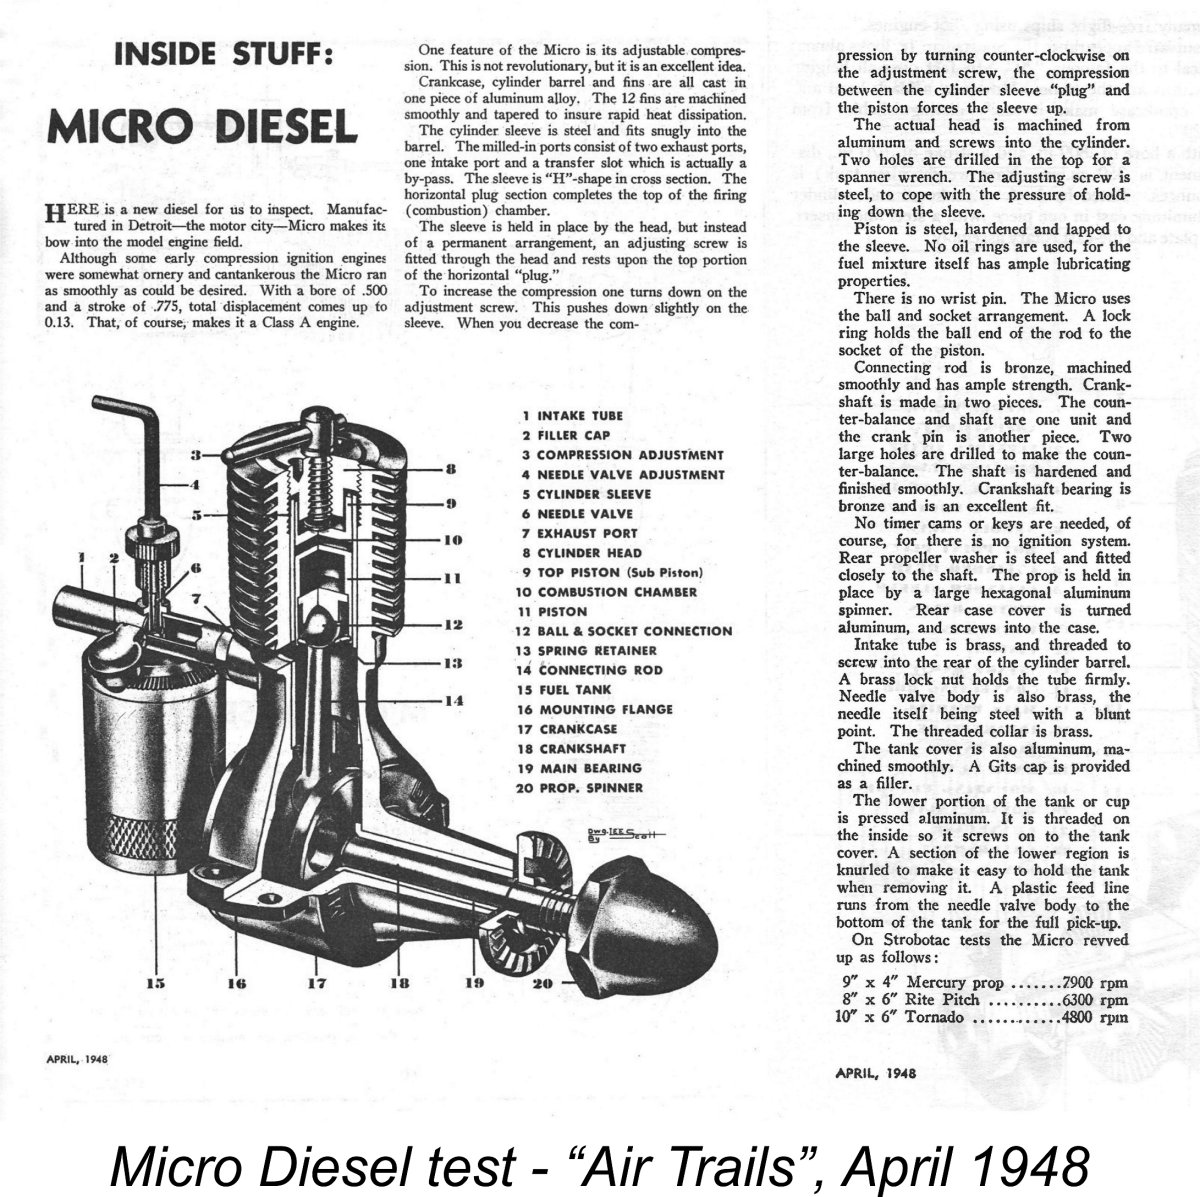 Micro Diesel Usa Amd A Diagram Of Engine Piston As Mentioned Earlier The Original Was Subject Test Report Which Appeared In April 1948 Issue Air Trails Magazine